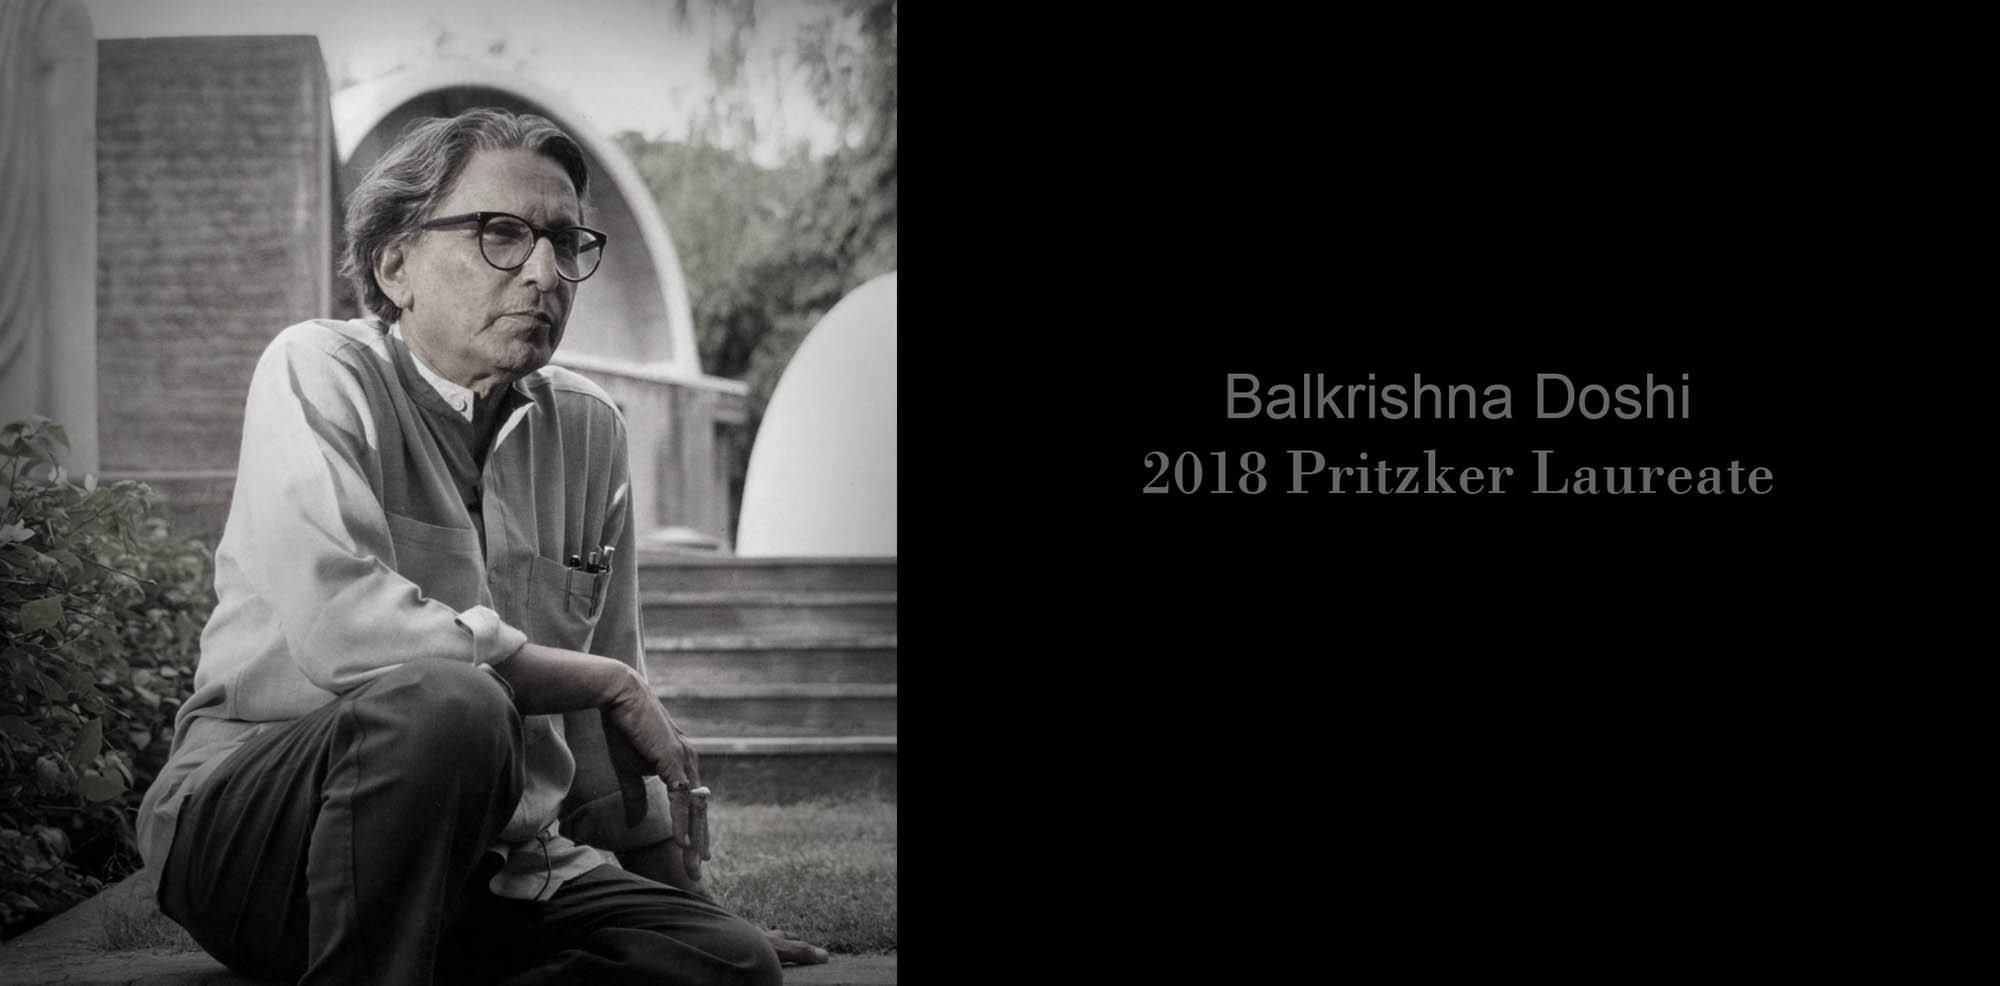 Balkrishna Doshi of India is the 2018 Pritzker Architecture Prize Laureate